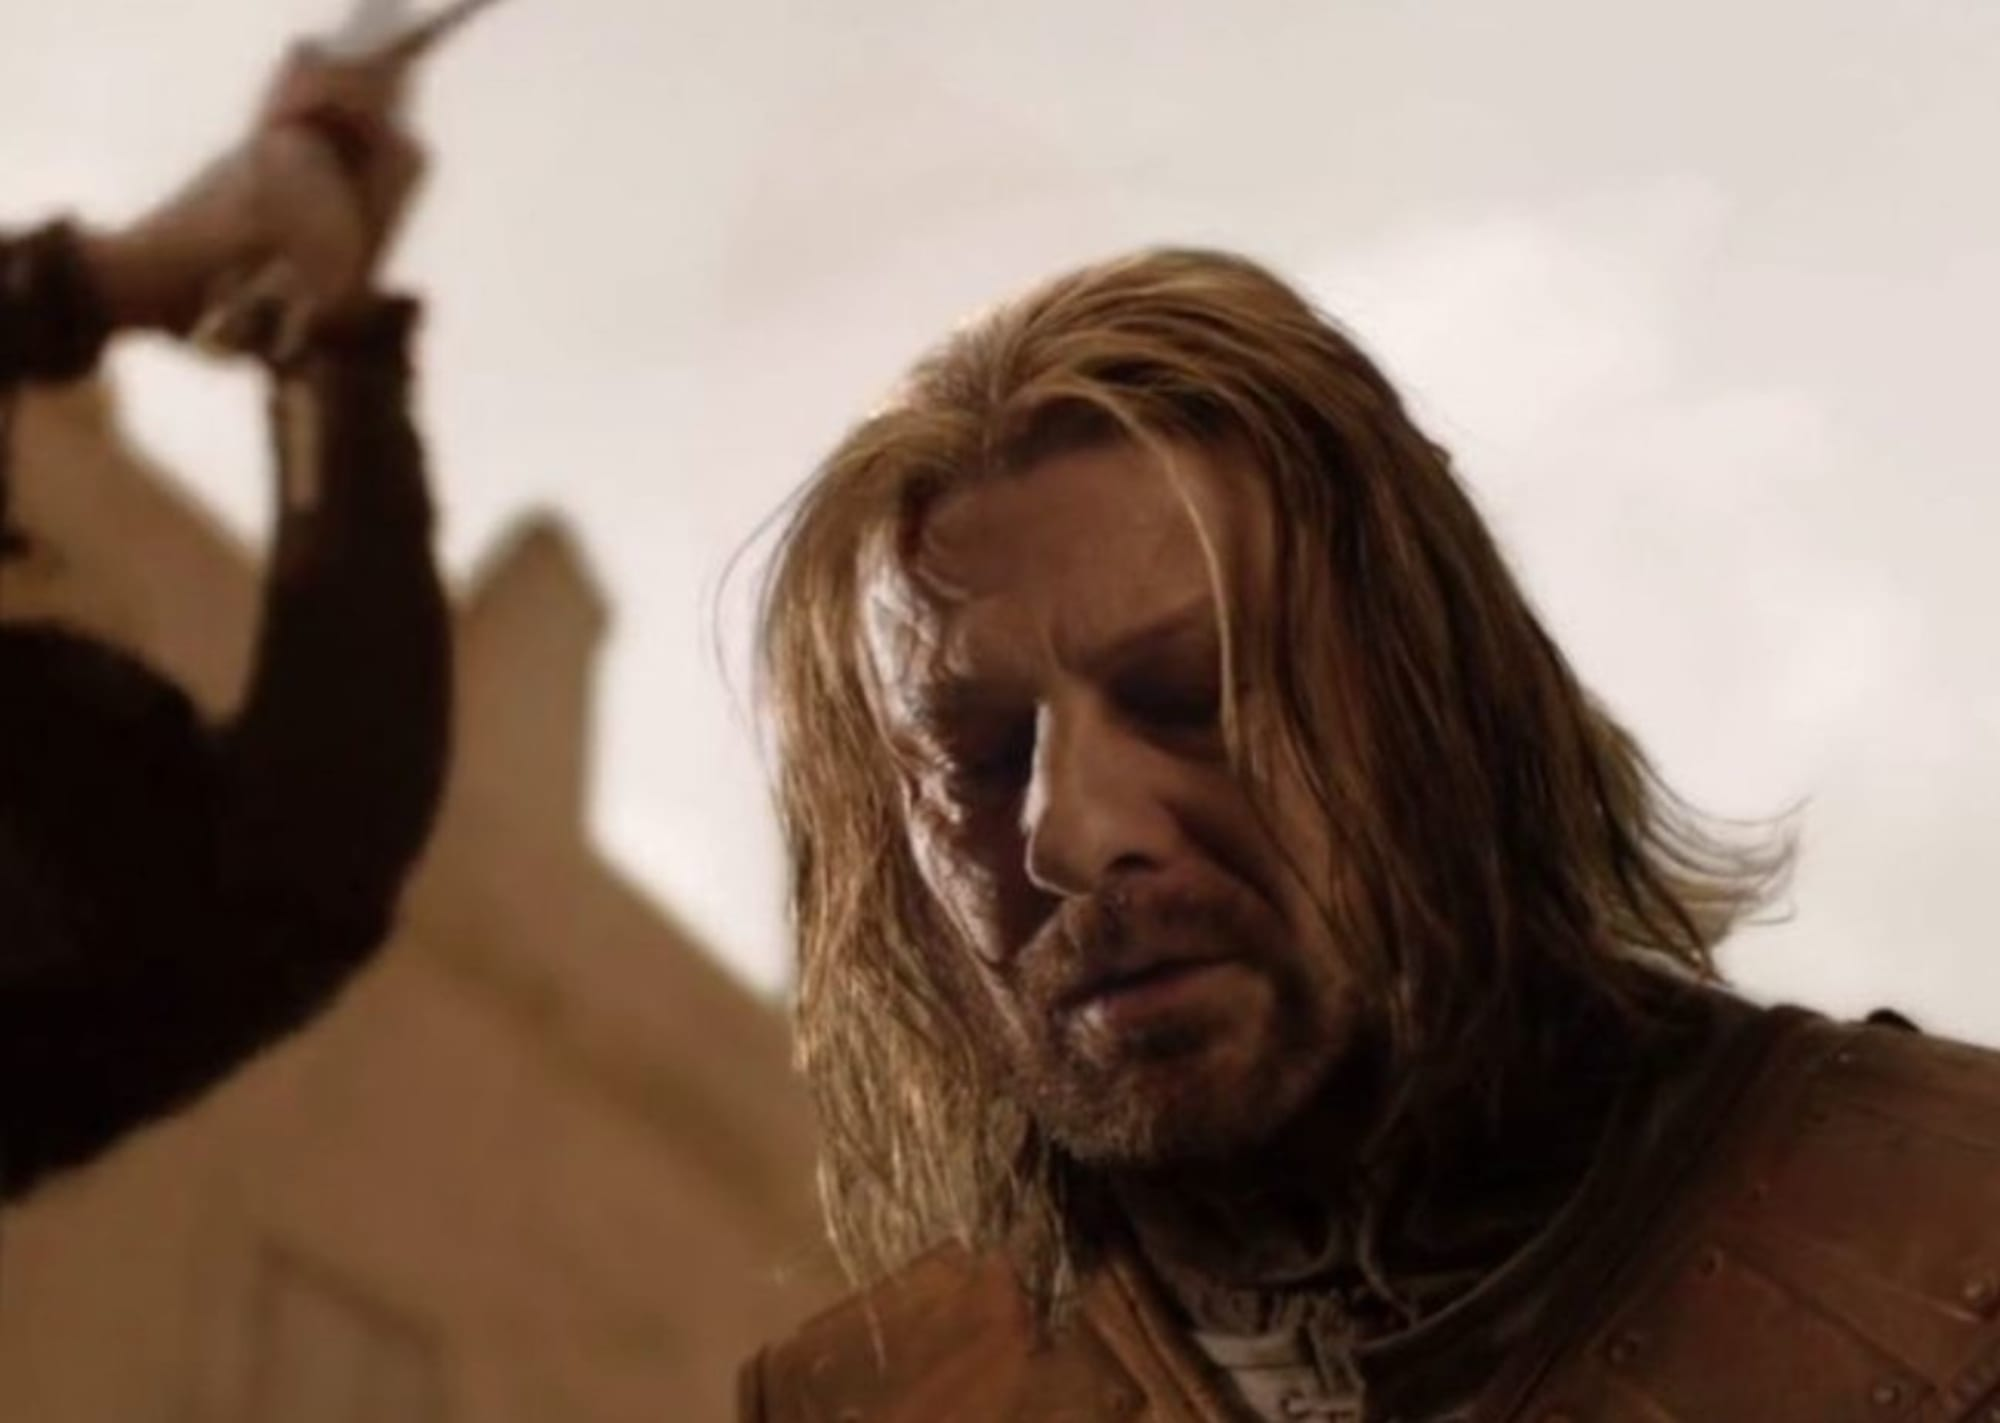 https 2F2Fwinteriscoming.net2Ffiles2F20212F042FScreen Shot 2021 04 06 at 8.38.36 PM 33 Things You Didn't Know About The Game of Thrones Cast